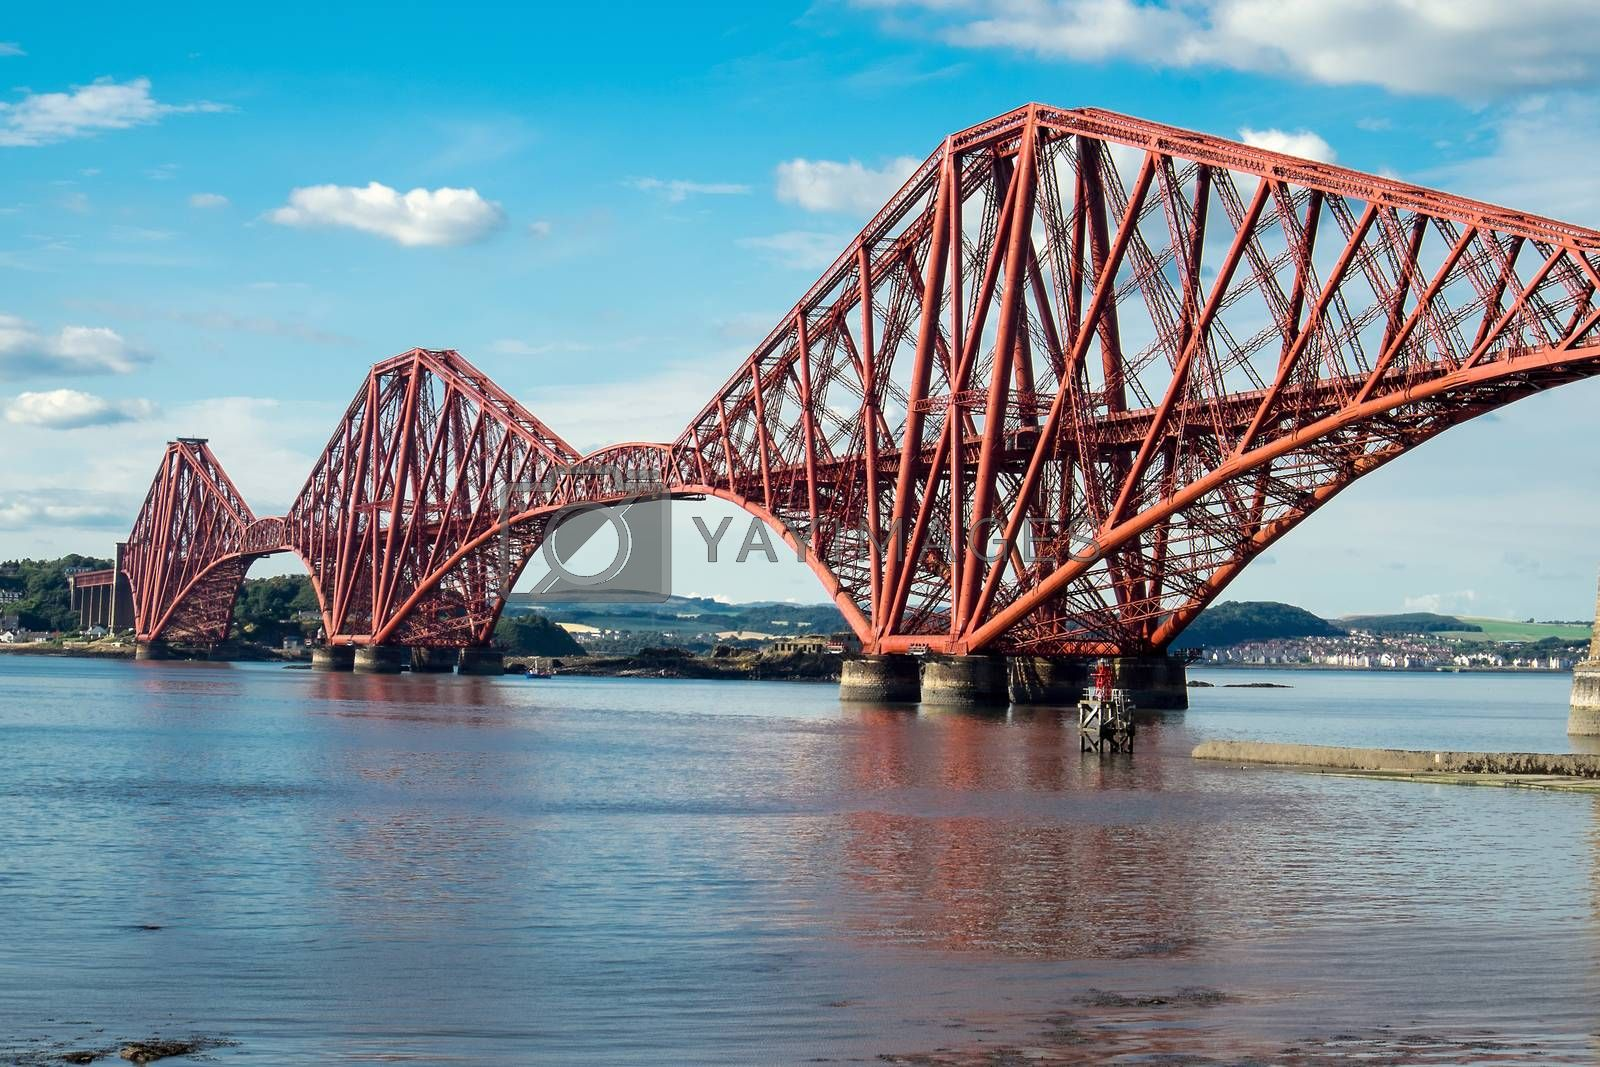 The impressing railway bridge over the Firth of Forth in Scotland